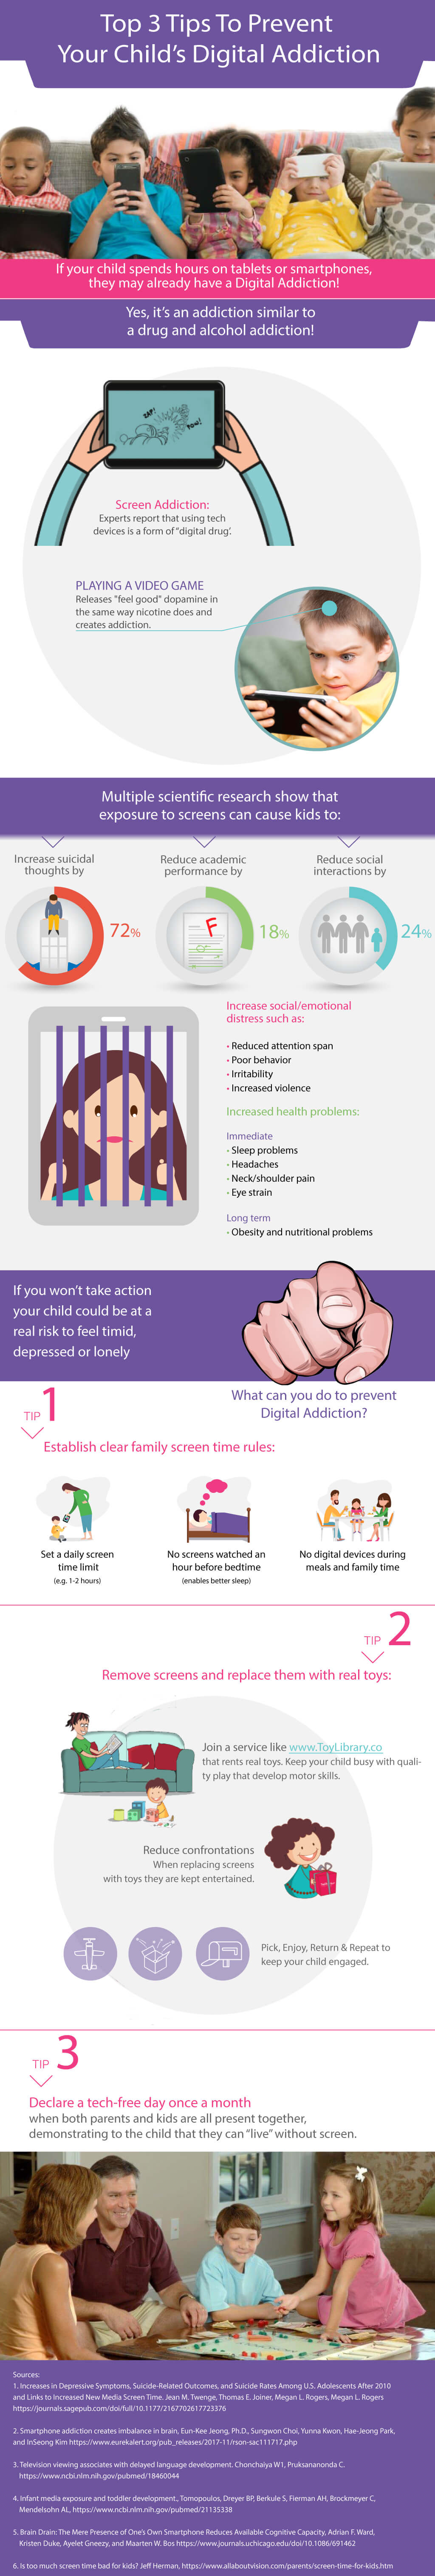 3 Guaranteed Ways to Prevent Your Kid's Digital Addiction